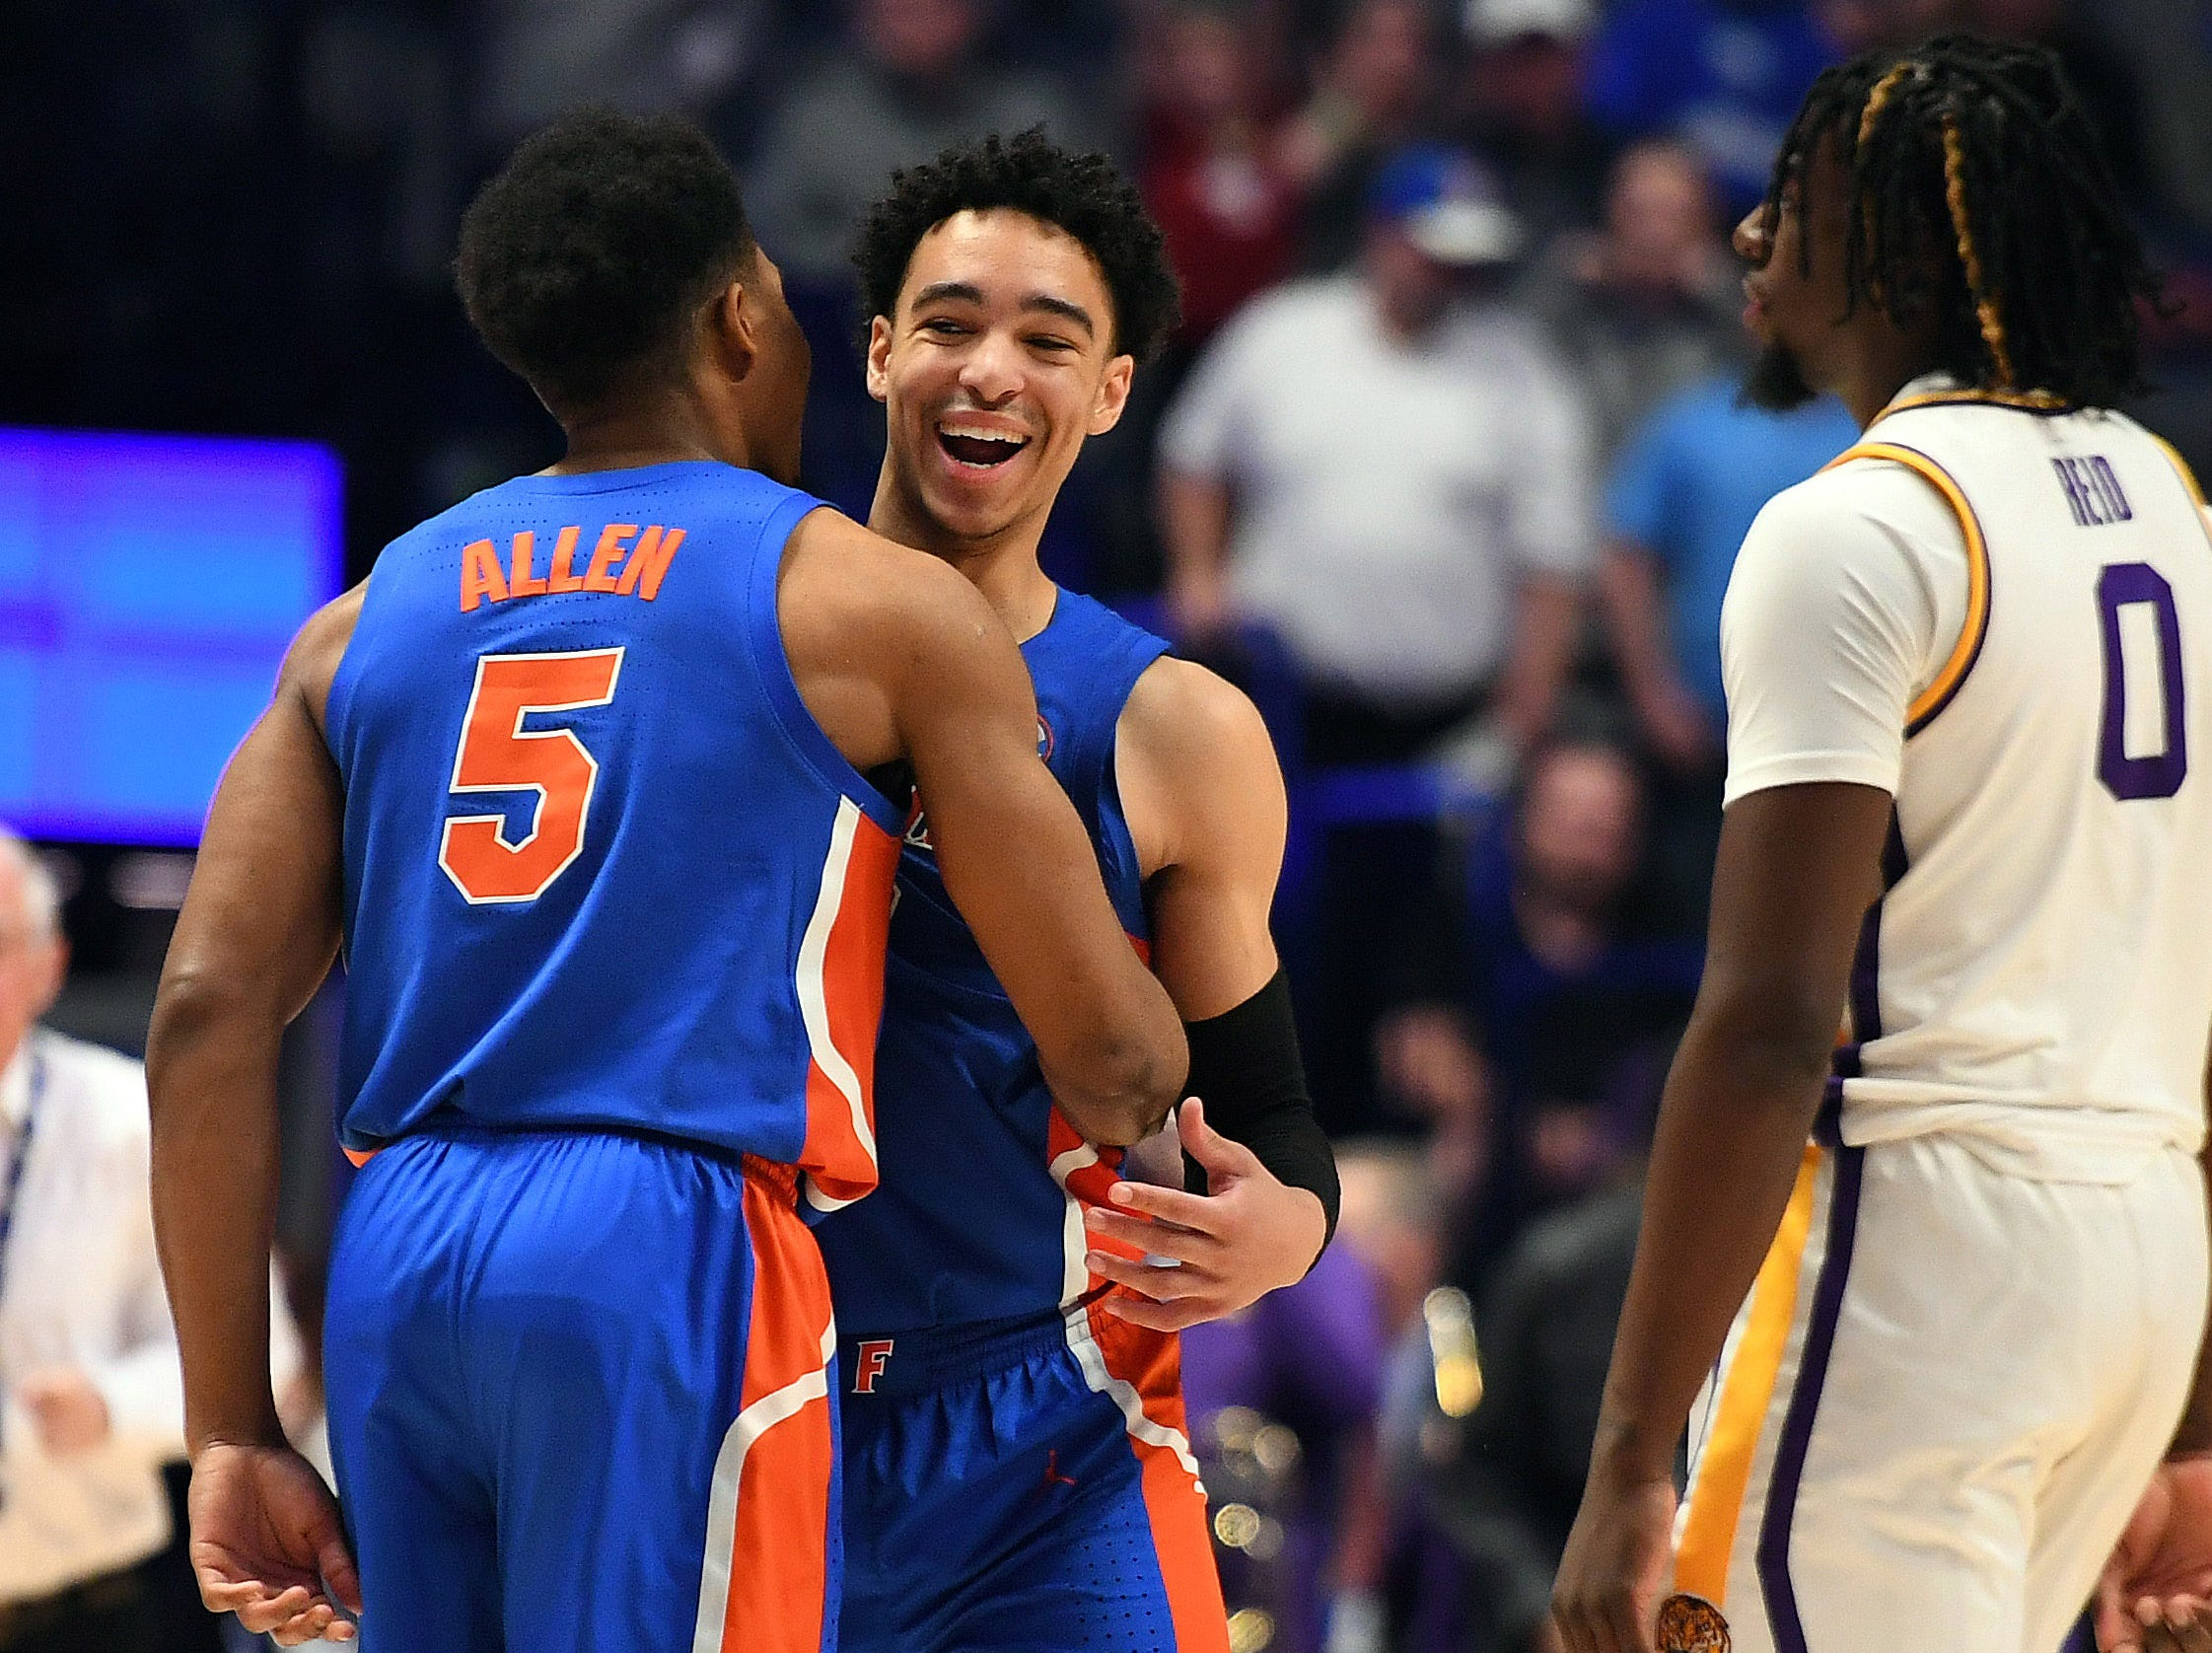 Mar 15, 2019; Nashville, TN, USA; Florida Gators guard KeVaughn Allen (5) and Gators guard Andrew Nembhard (2) celebrate after defeating the LSU Tigers in the SEC conference tournament at Bridgestone Arena. Mandatory Credit: Christopher Hanewinckel-USA TODAY Sports